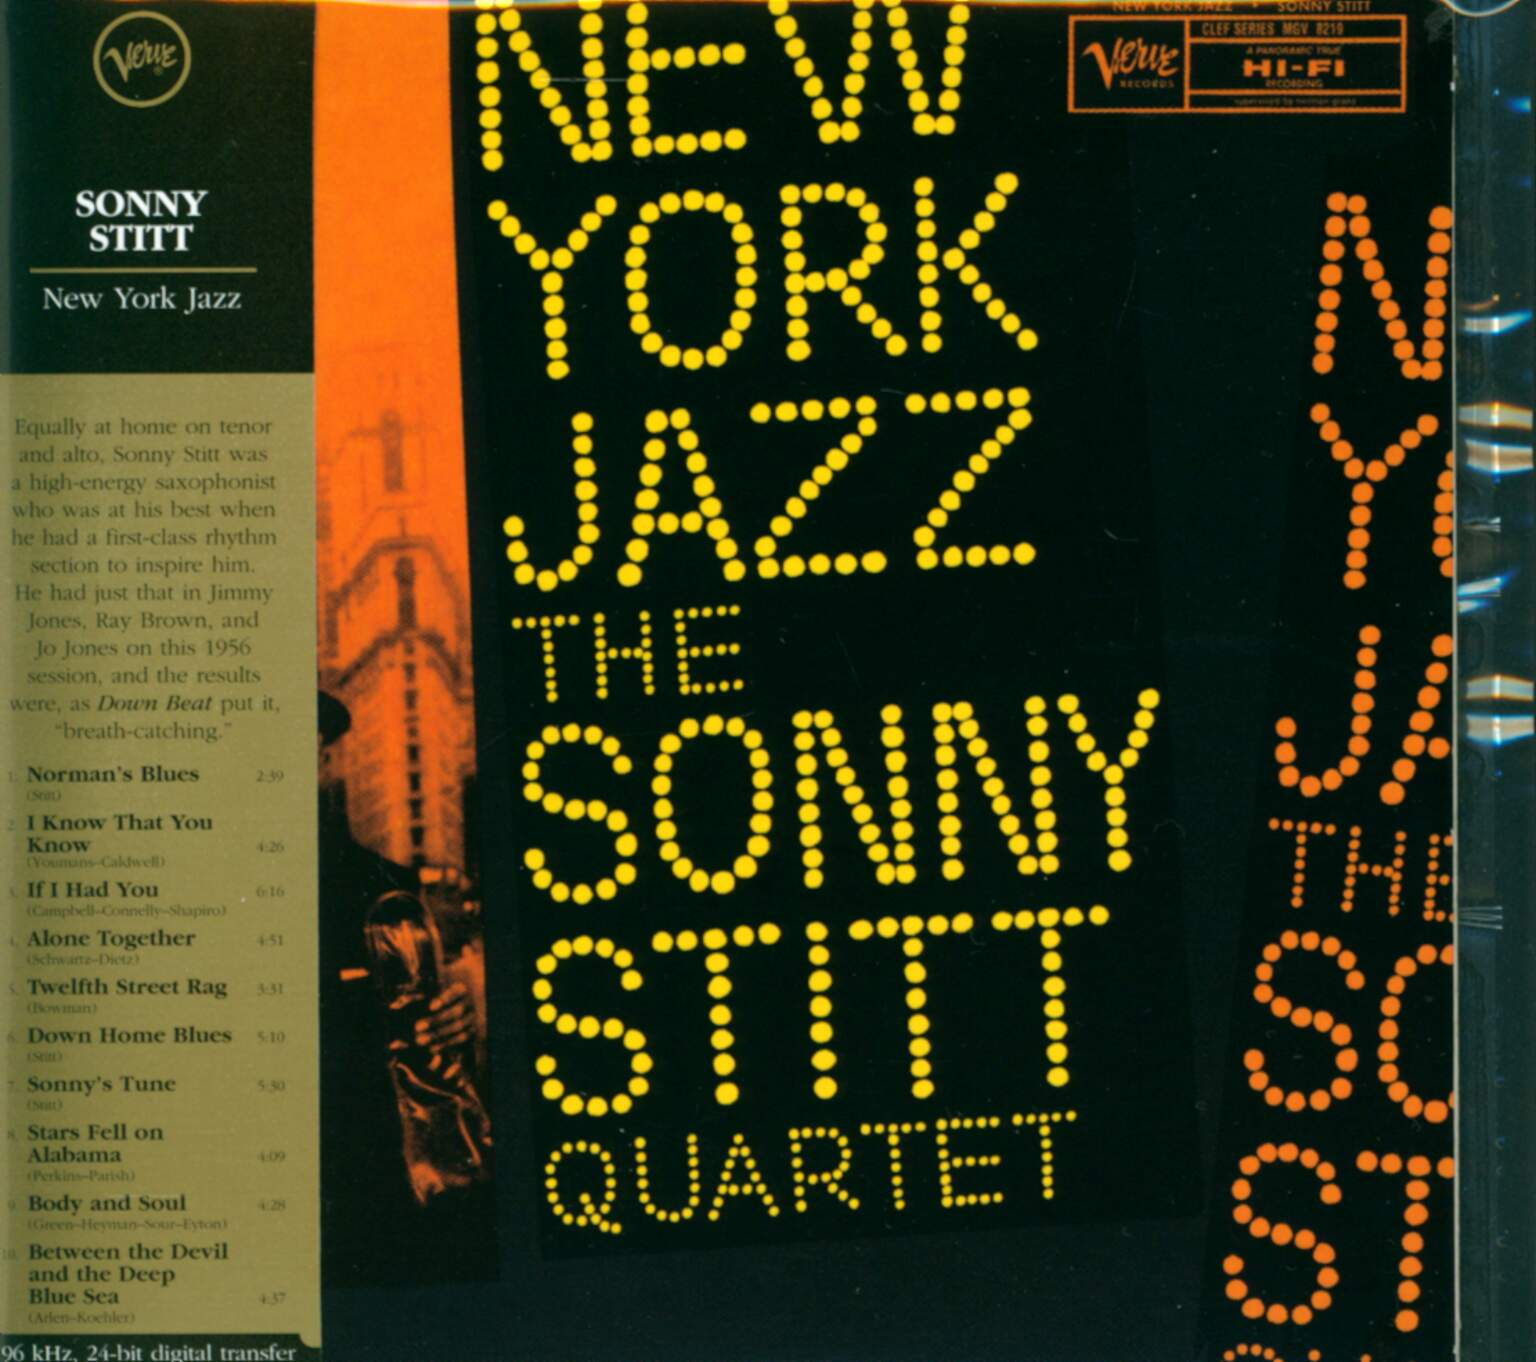 Sonny Stitt Quartet: New York Jazz, 1×CD